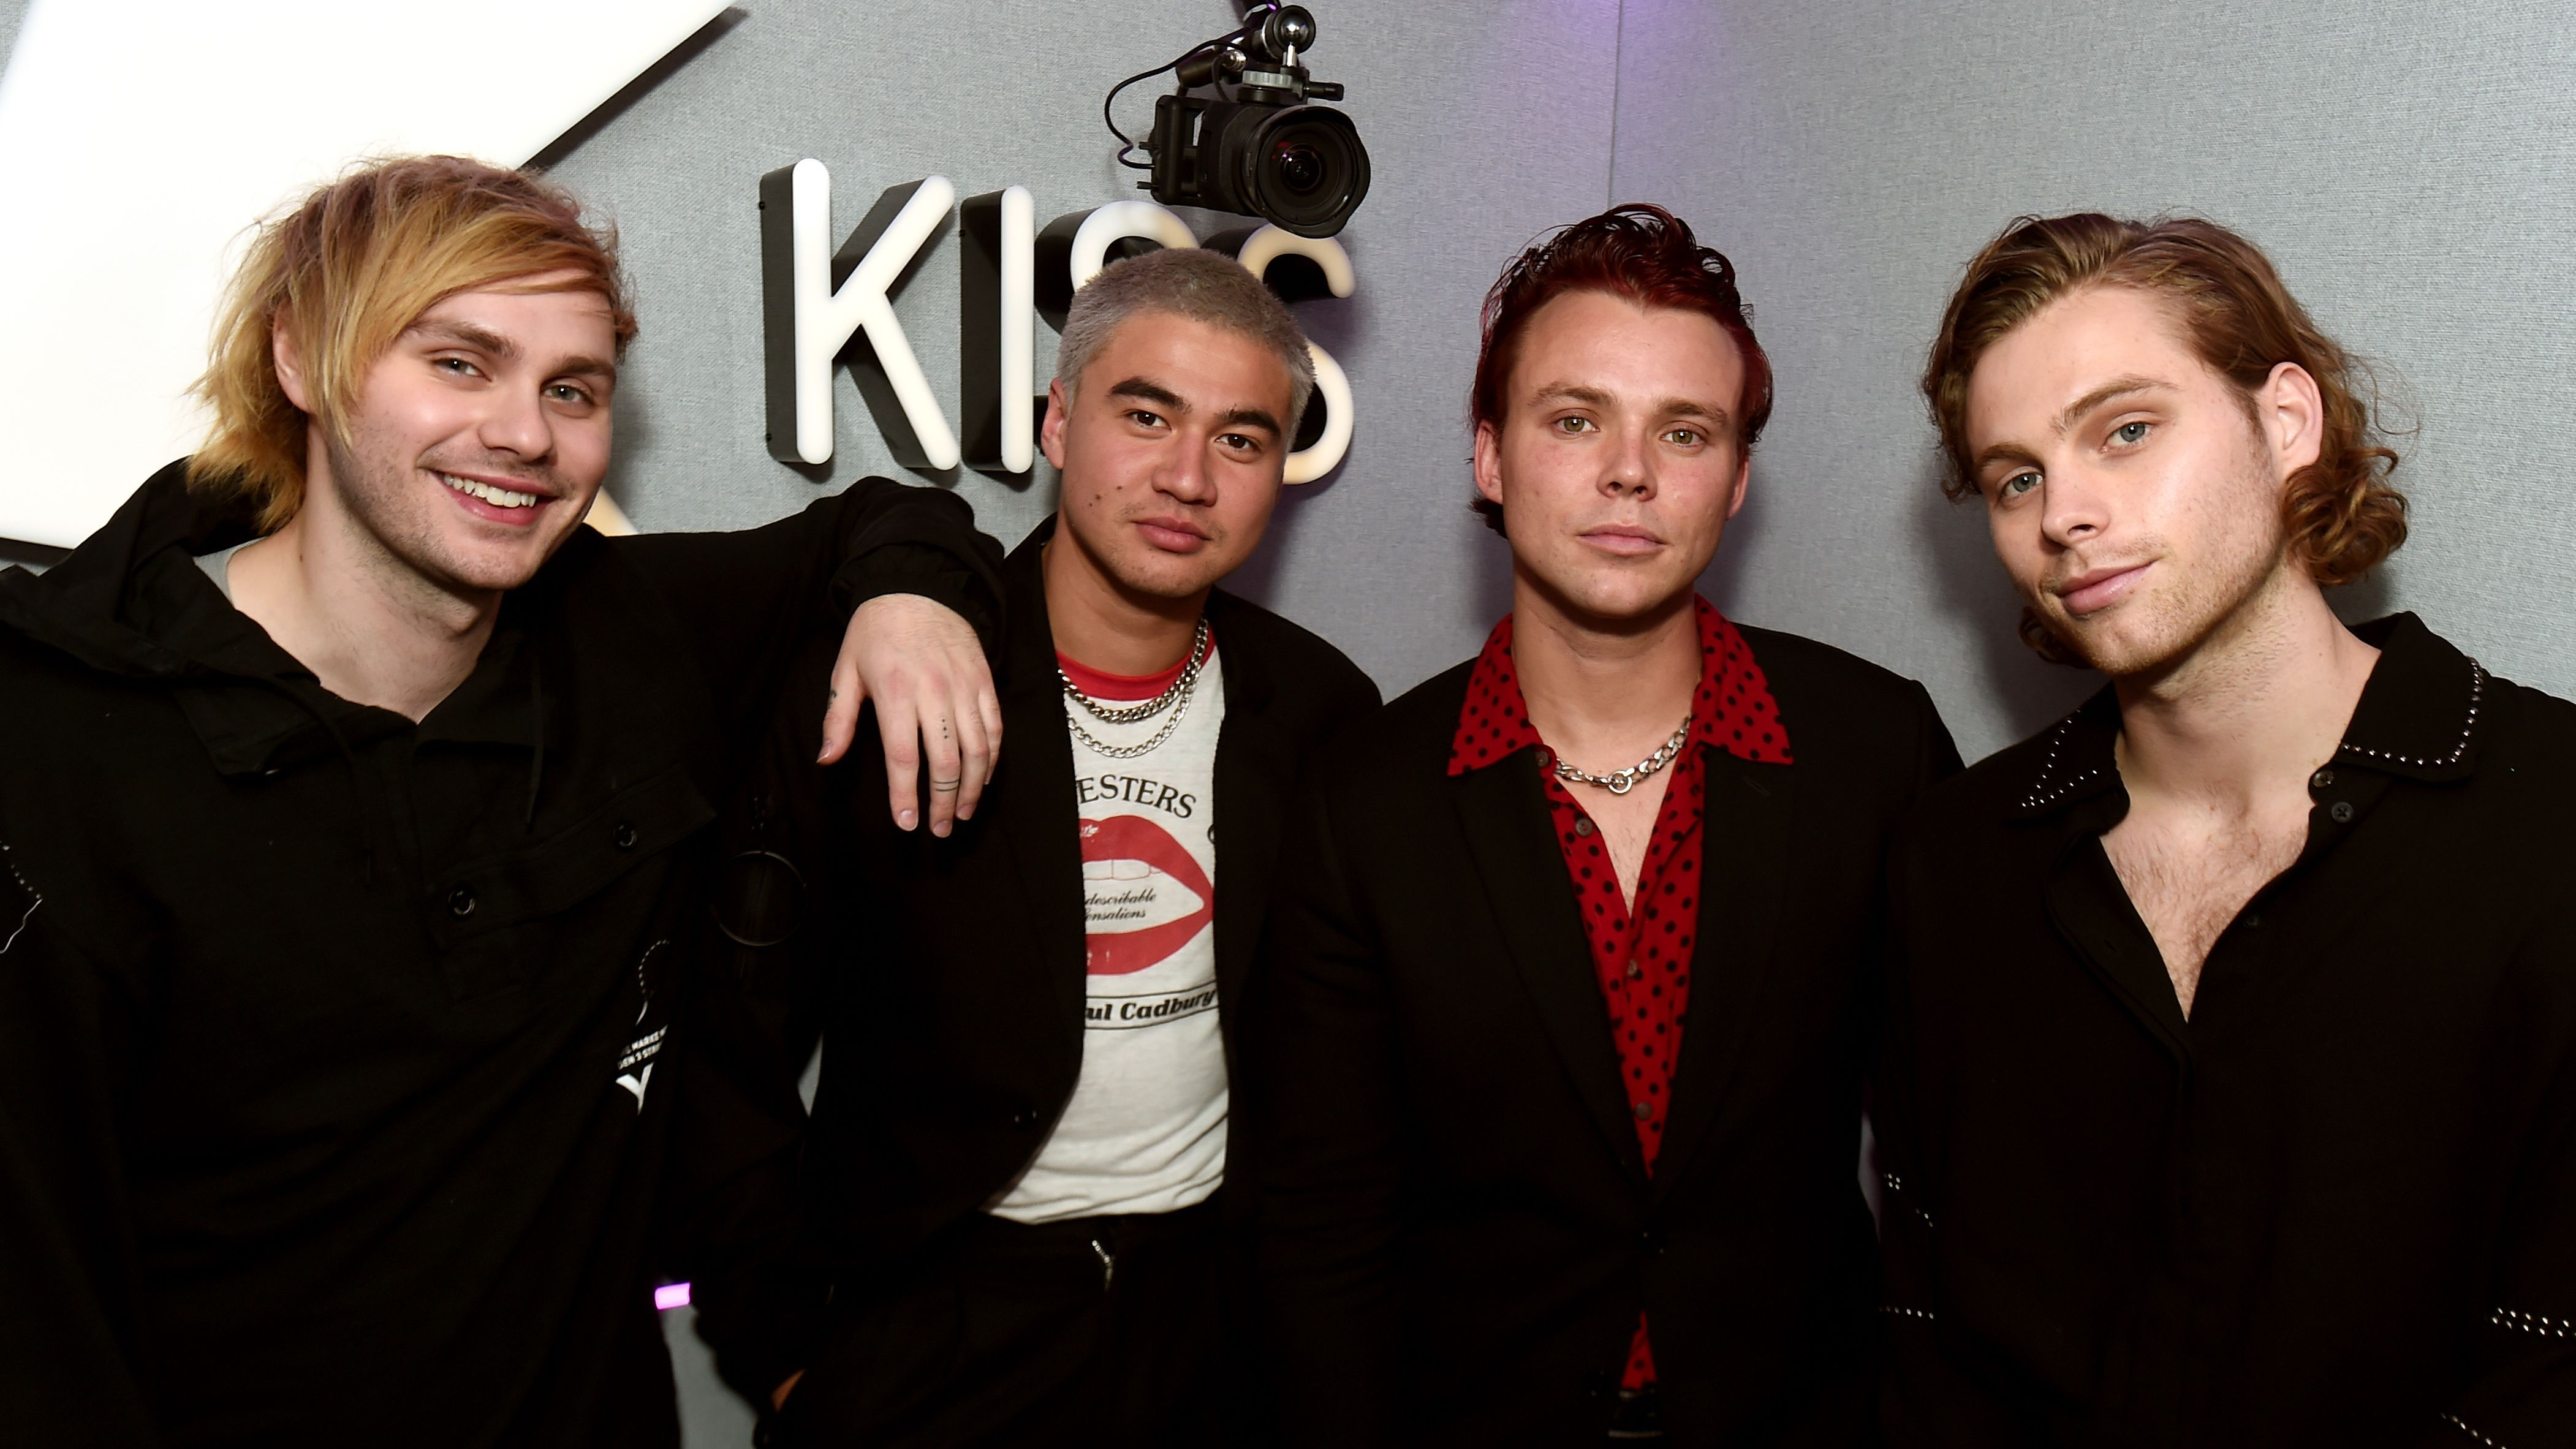 5SOS Gave Their 'Dancing With A Stranger' Cover A Sneaky Surprise